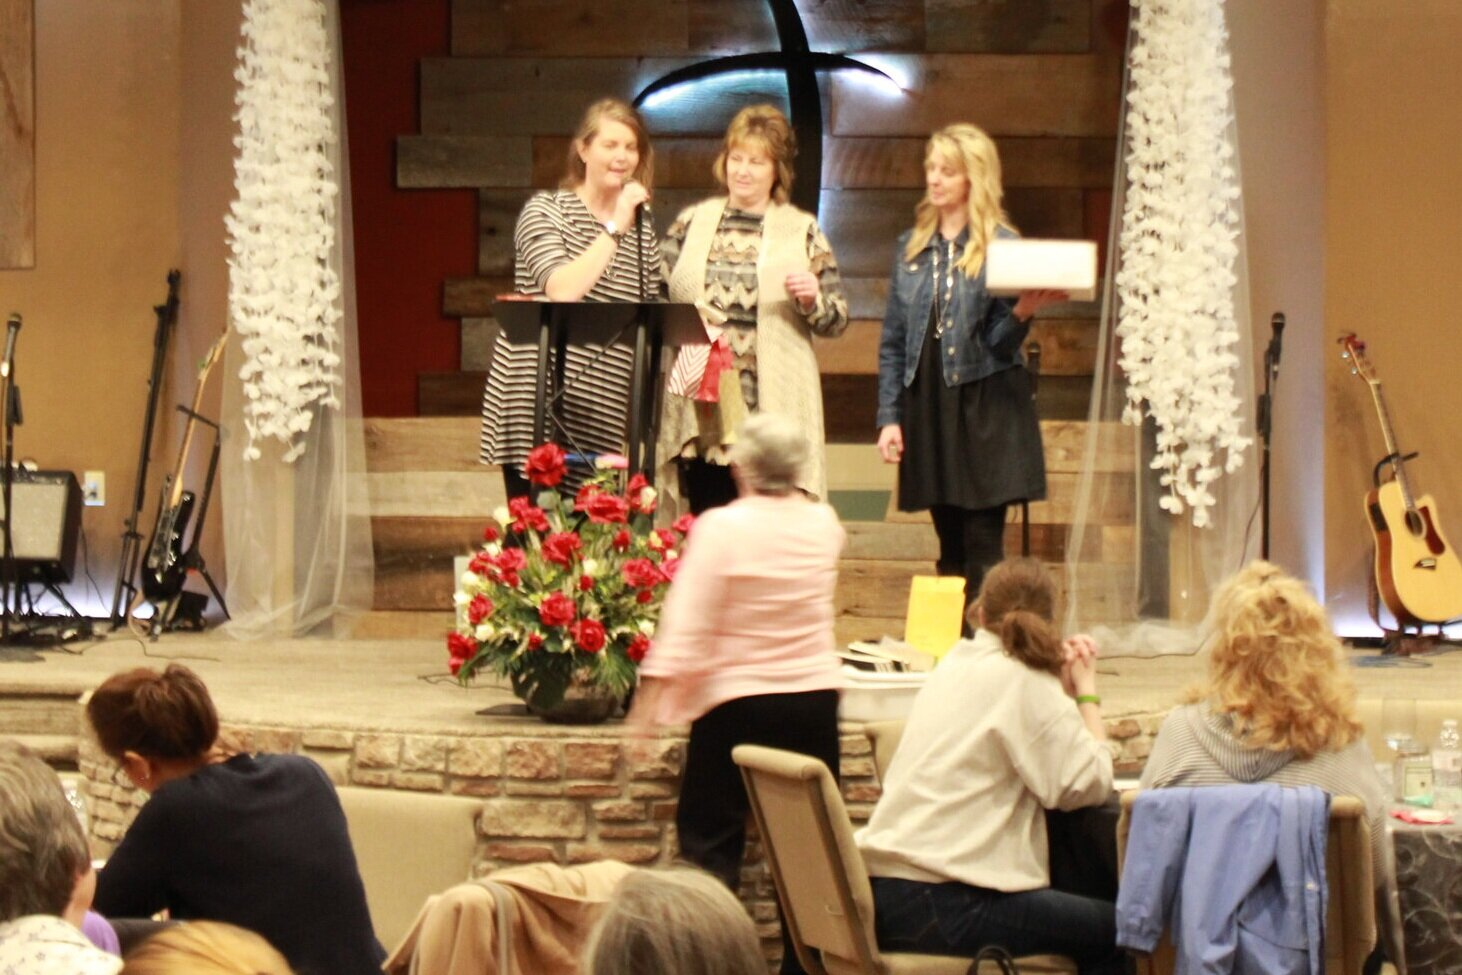 The Girls presenting one of the many door prizes given at the event